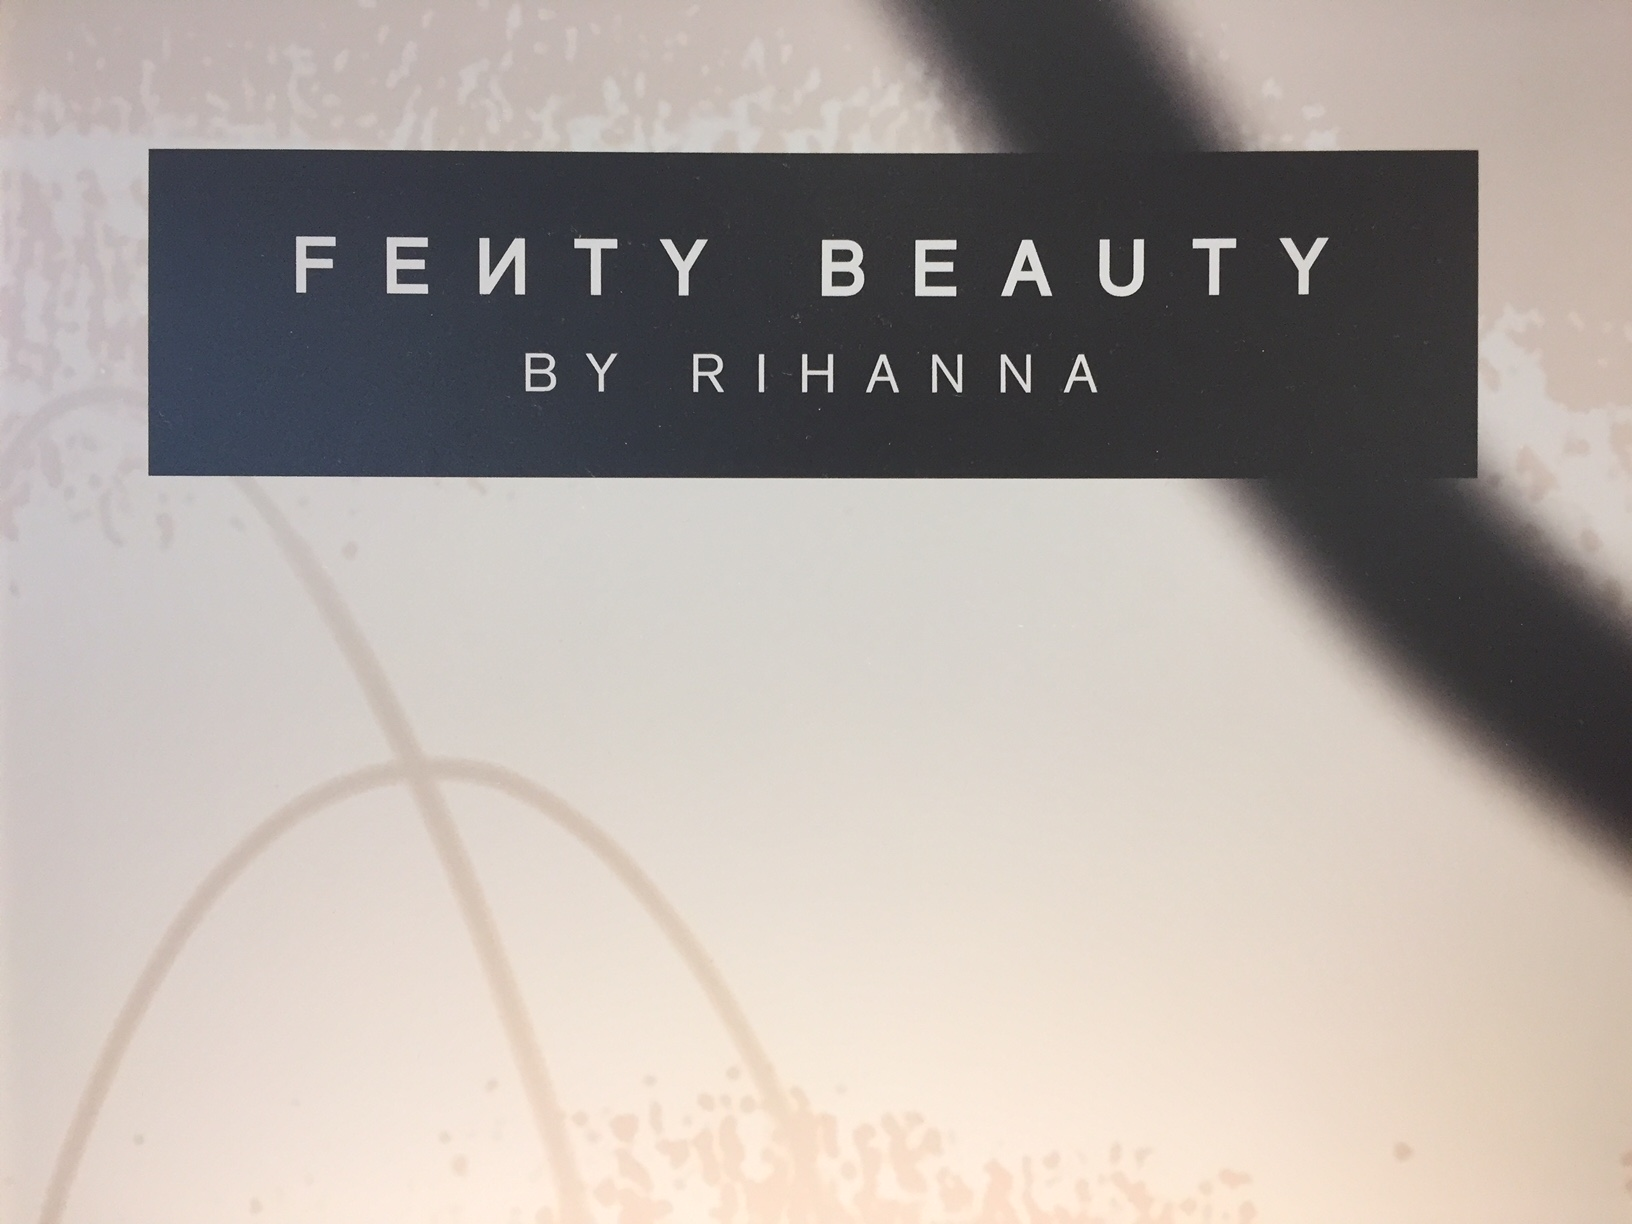 Fenty Beauty: Beauty For All